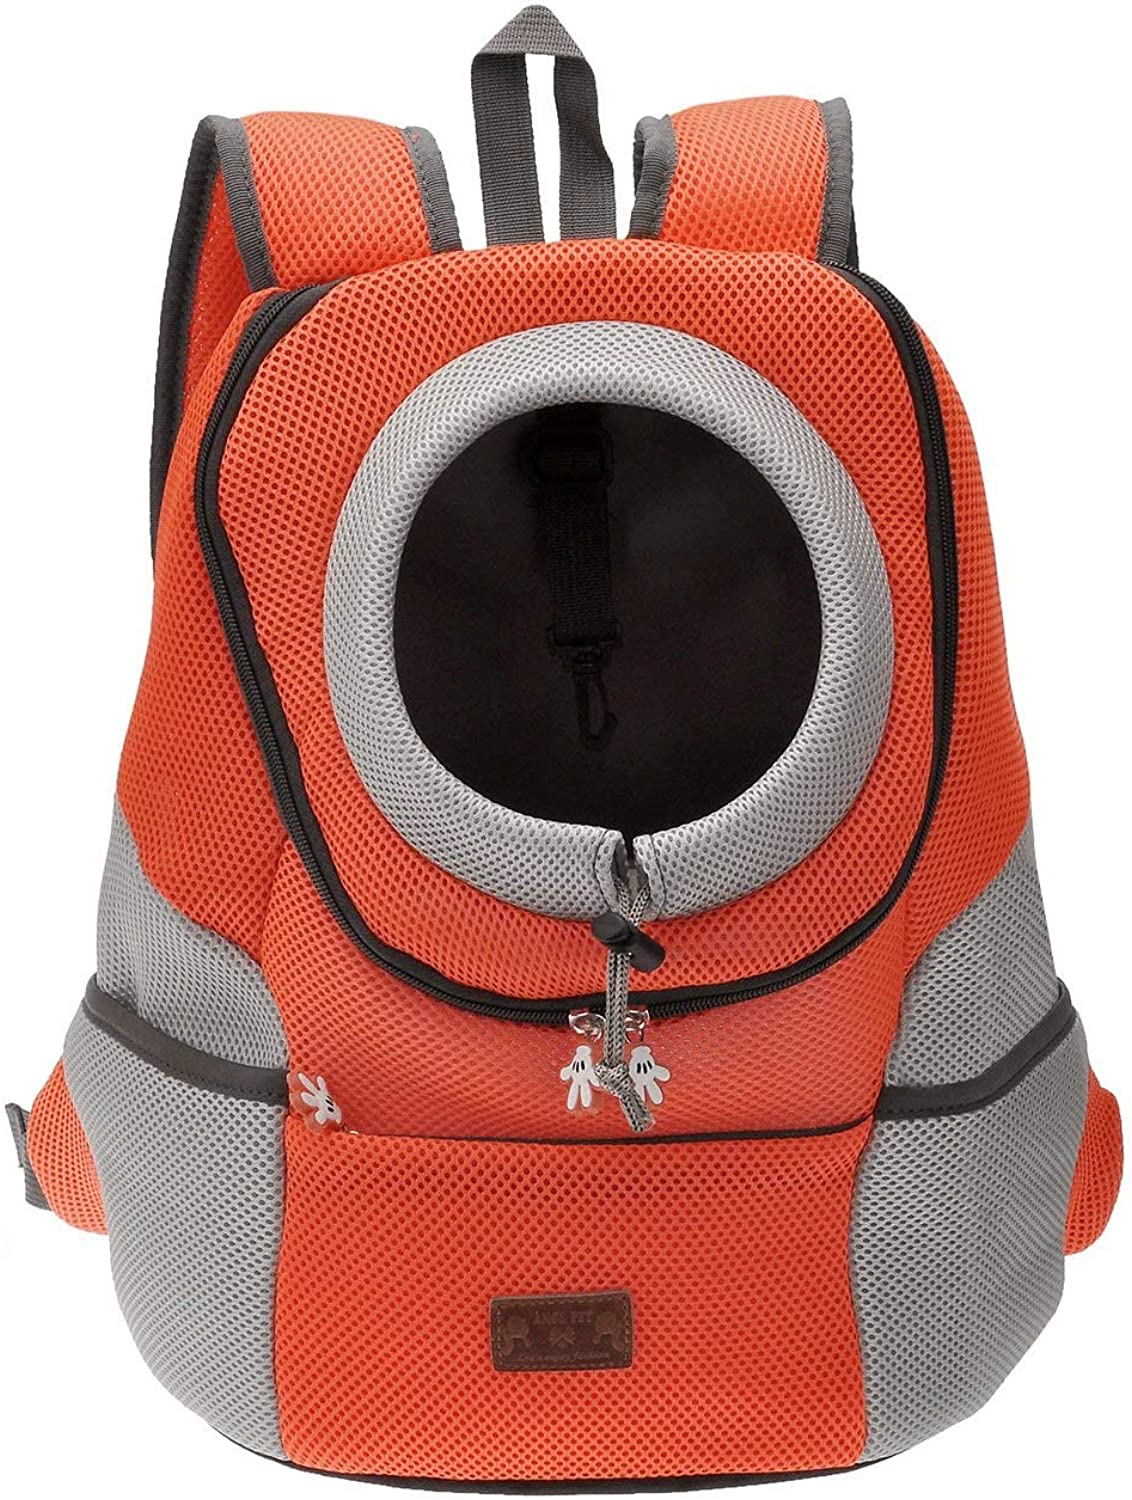 Dog Carrier Backpack Comfortable Dog Cat Carrier Backpack, Puppy Pet Front Bag with Breathable Head Out Design and Padded Shoulder for Hiking Outdoor Travel